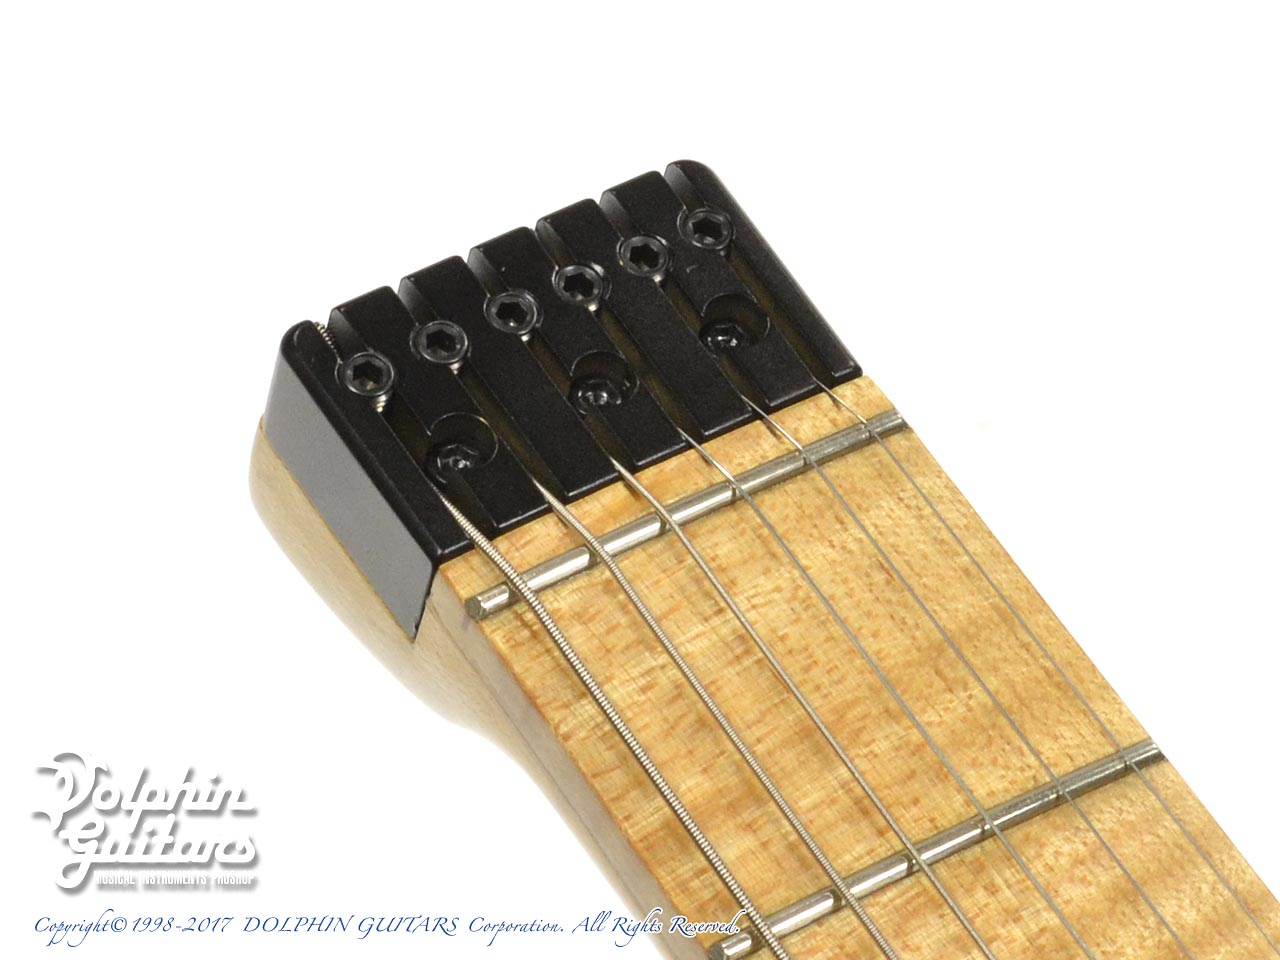 Charo's: CH-G6 Headless Guitar (Spalted Curly Maple) (CS) (7)